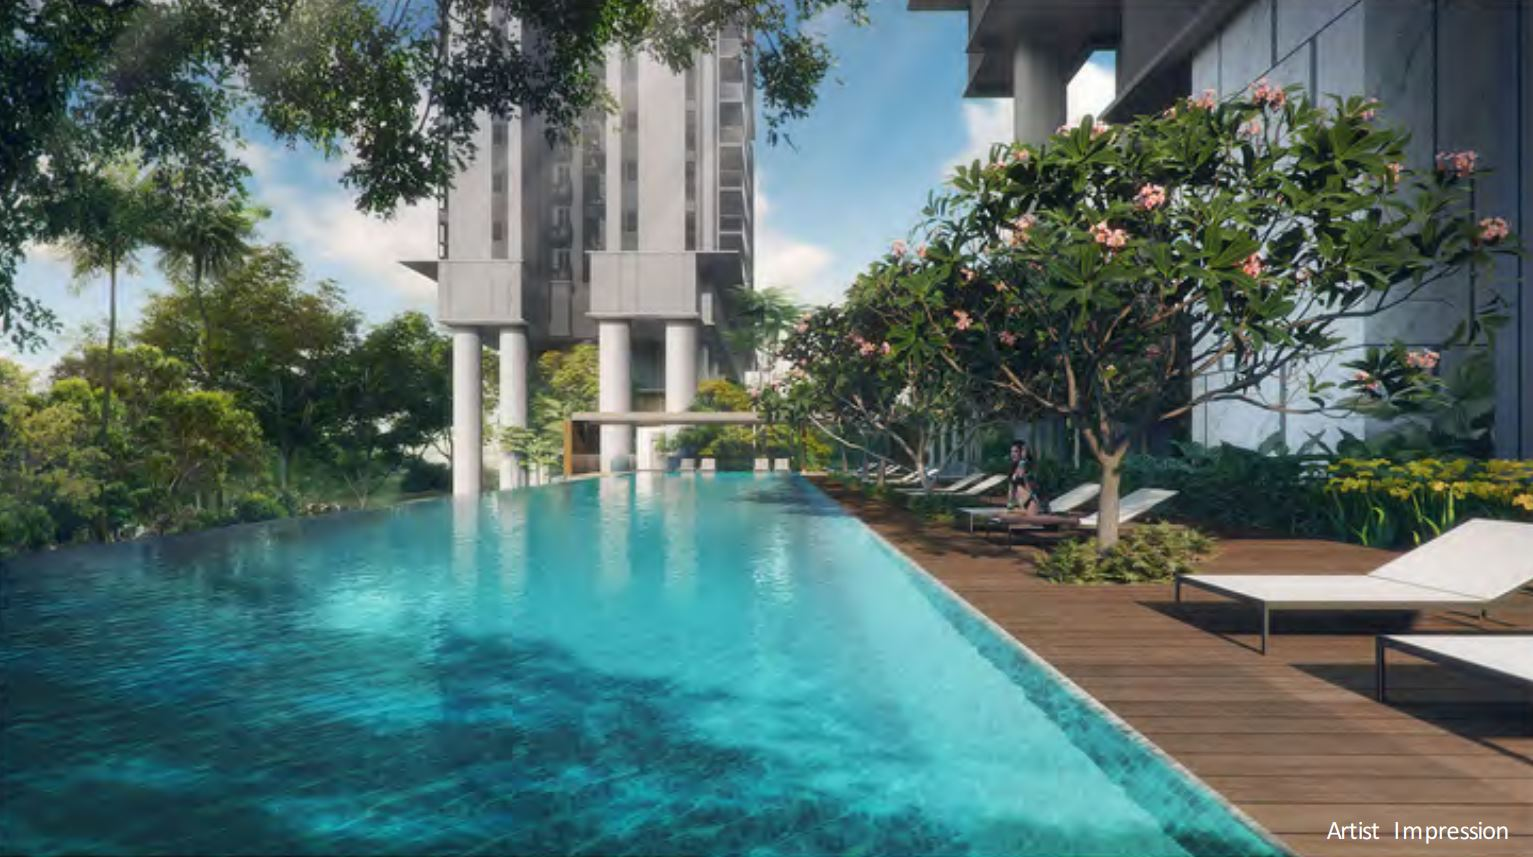 One of the 7 pools in the Stirling Residences